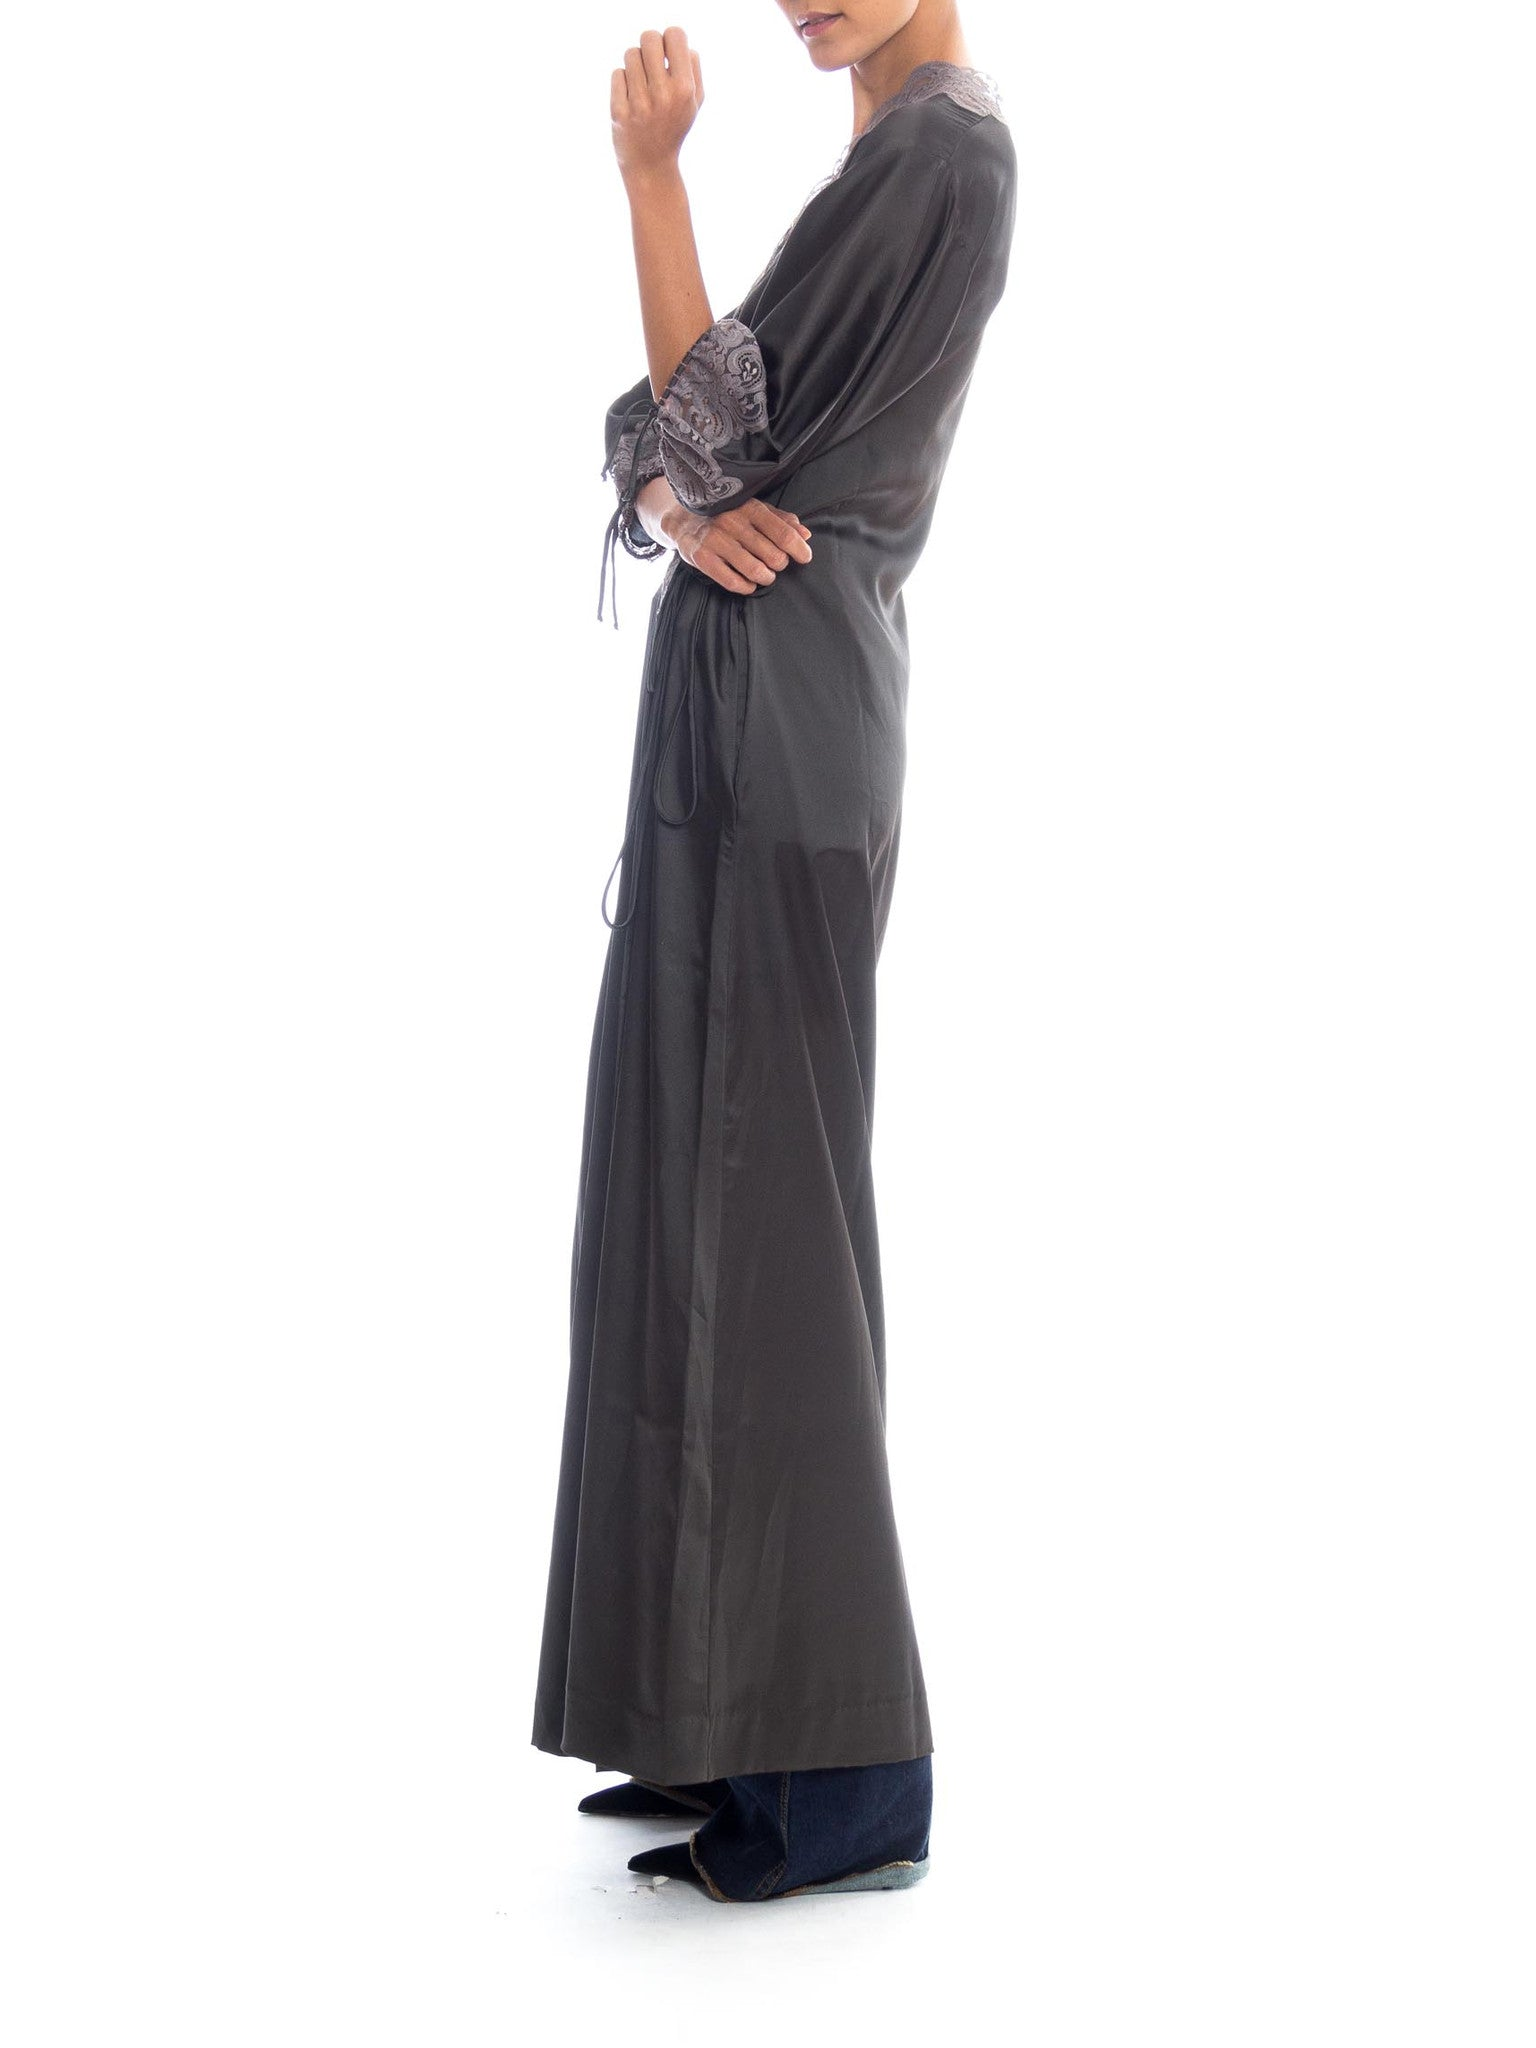 1970S SAKS FIFTH AVENUE Dark Grey Polyester Satin & Lace Negligee With Matching Wrap Robe